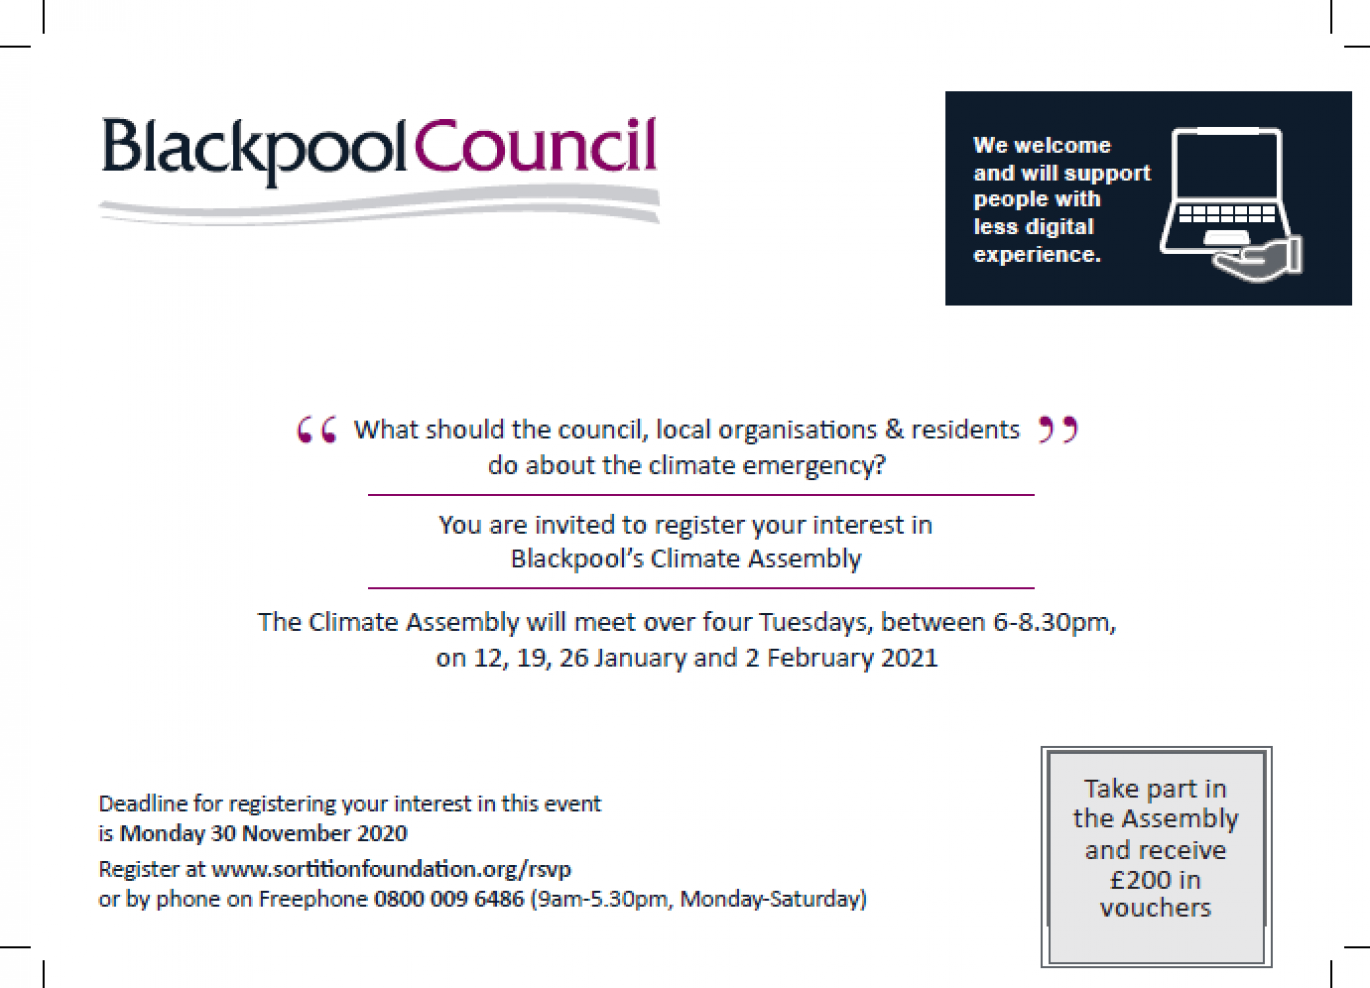 The invite to residents for the climate assembly in Blackpool.